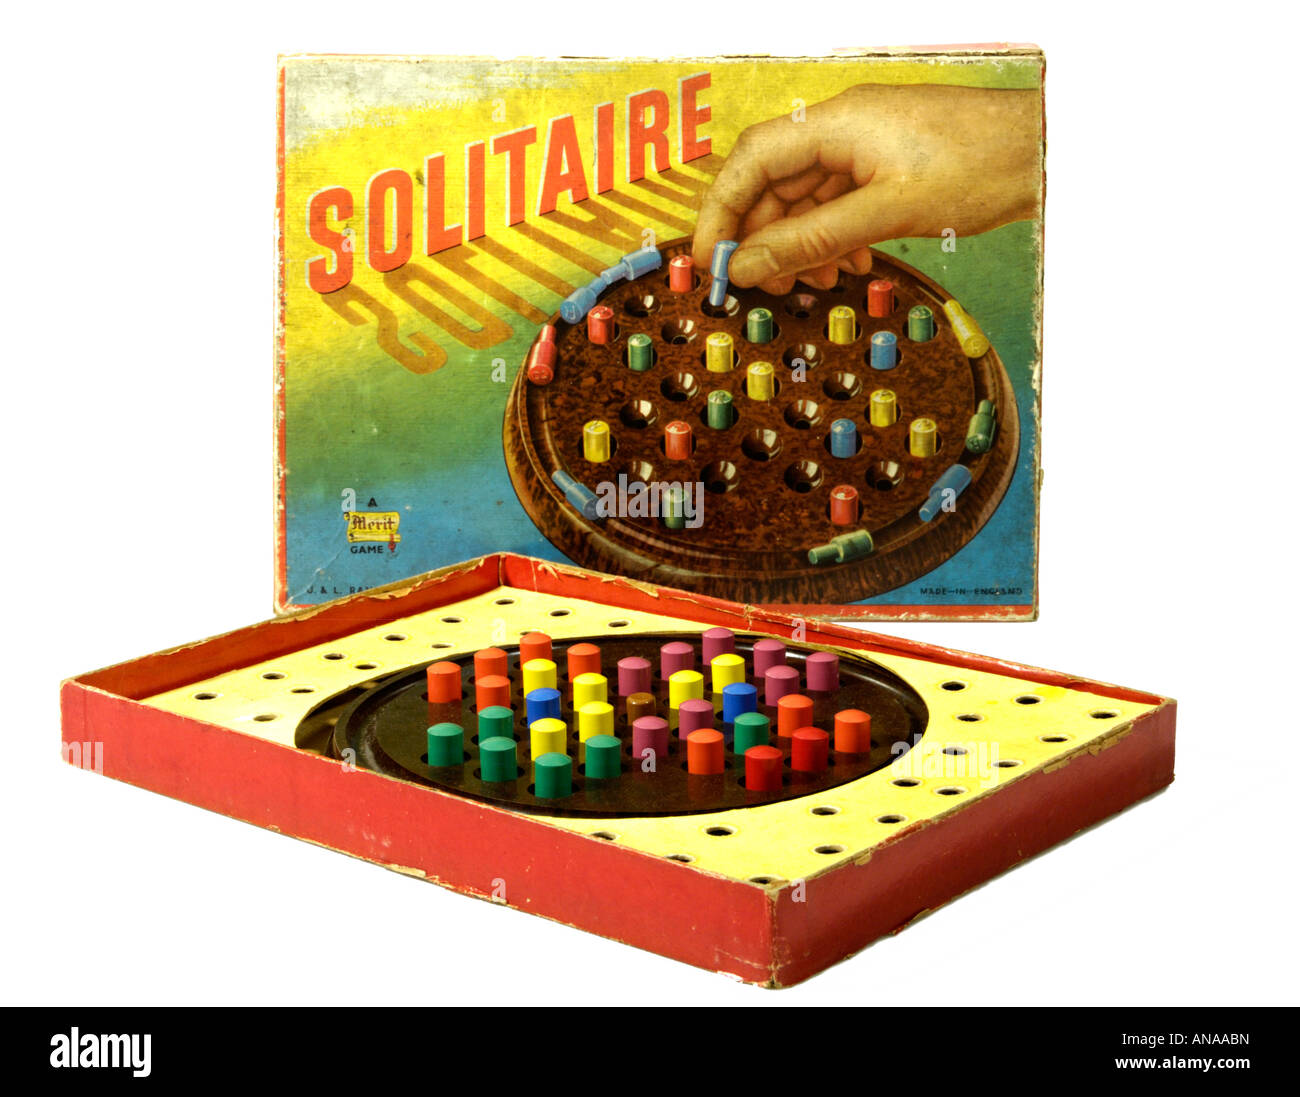 Solitaire game Merit Toys 1950s - Stock Image